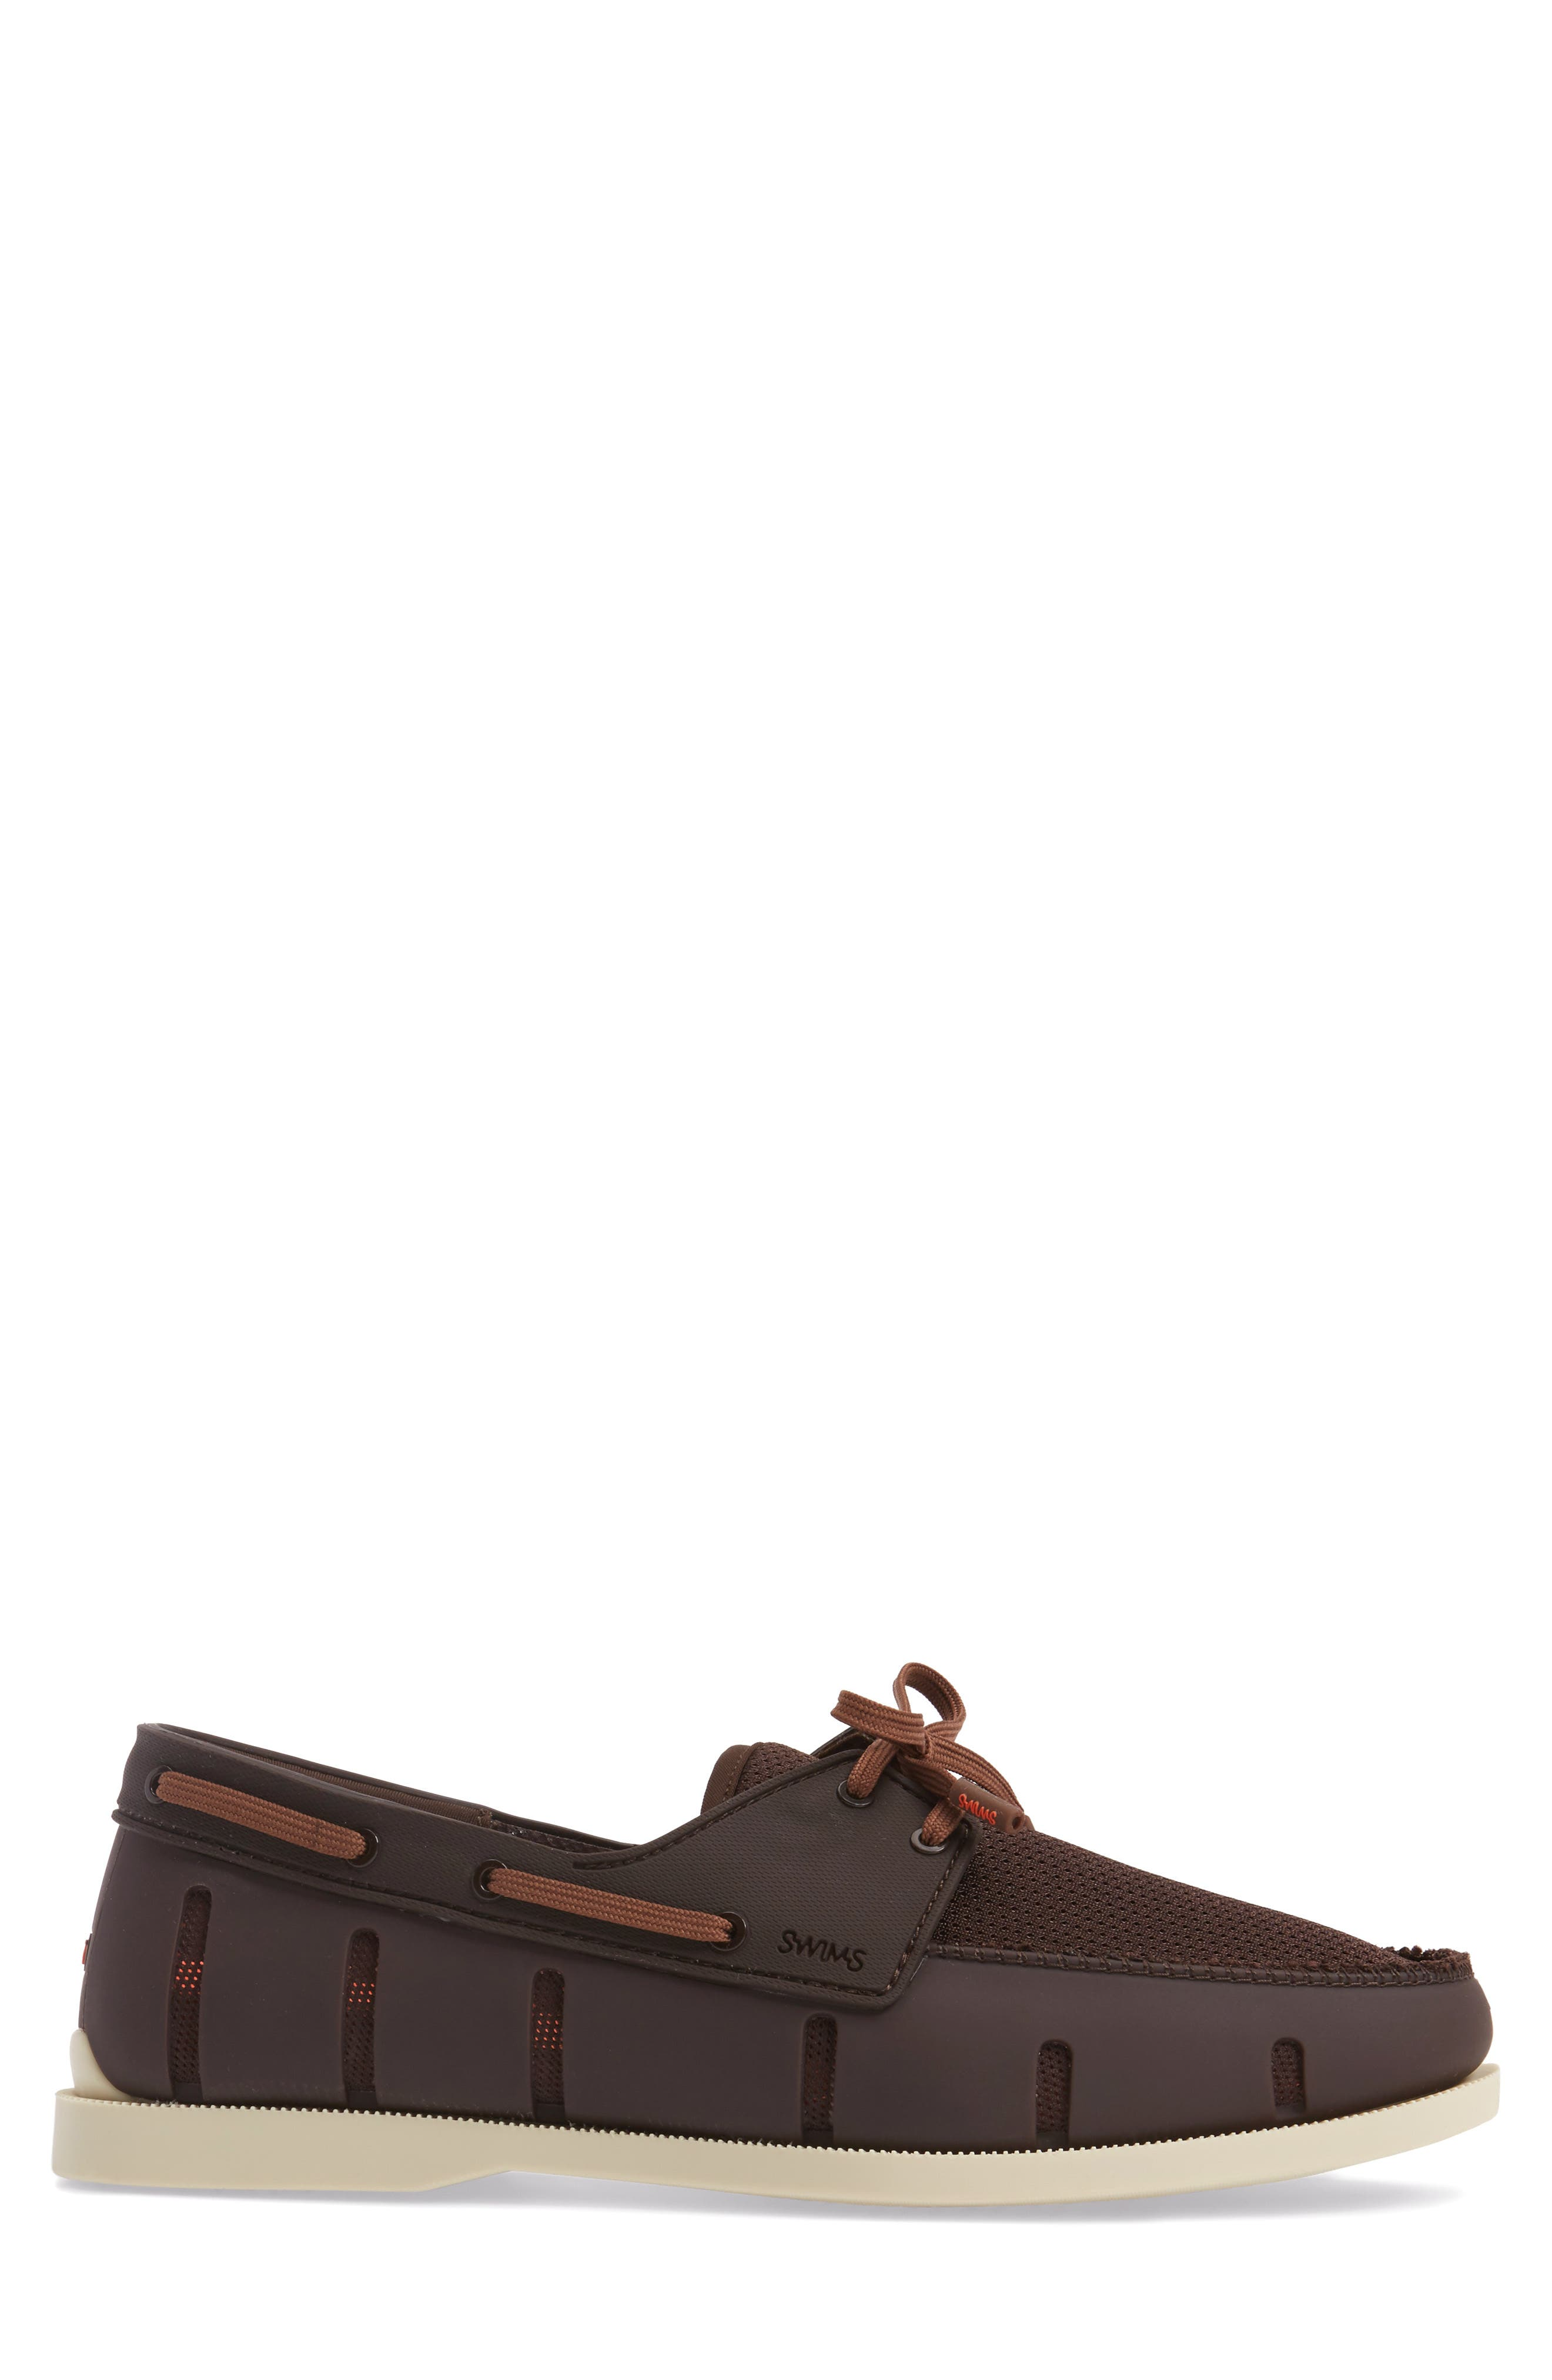 Alternate Image 3  - Swims 'Boat' Loafer (Men)